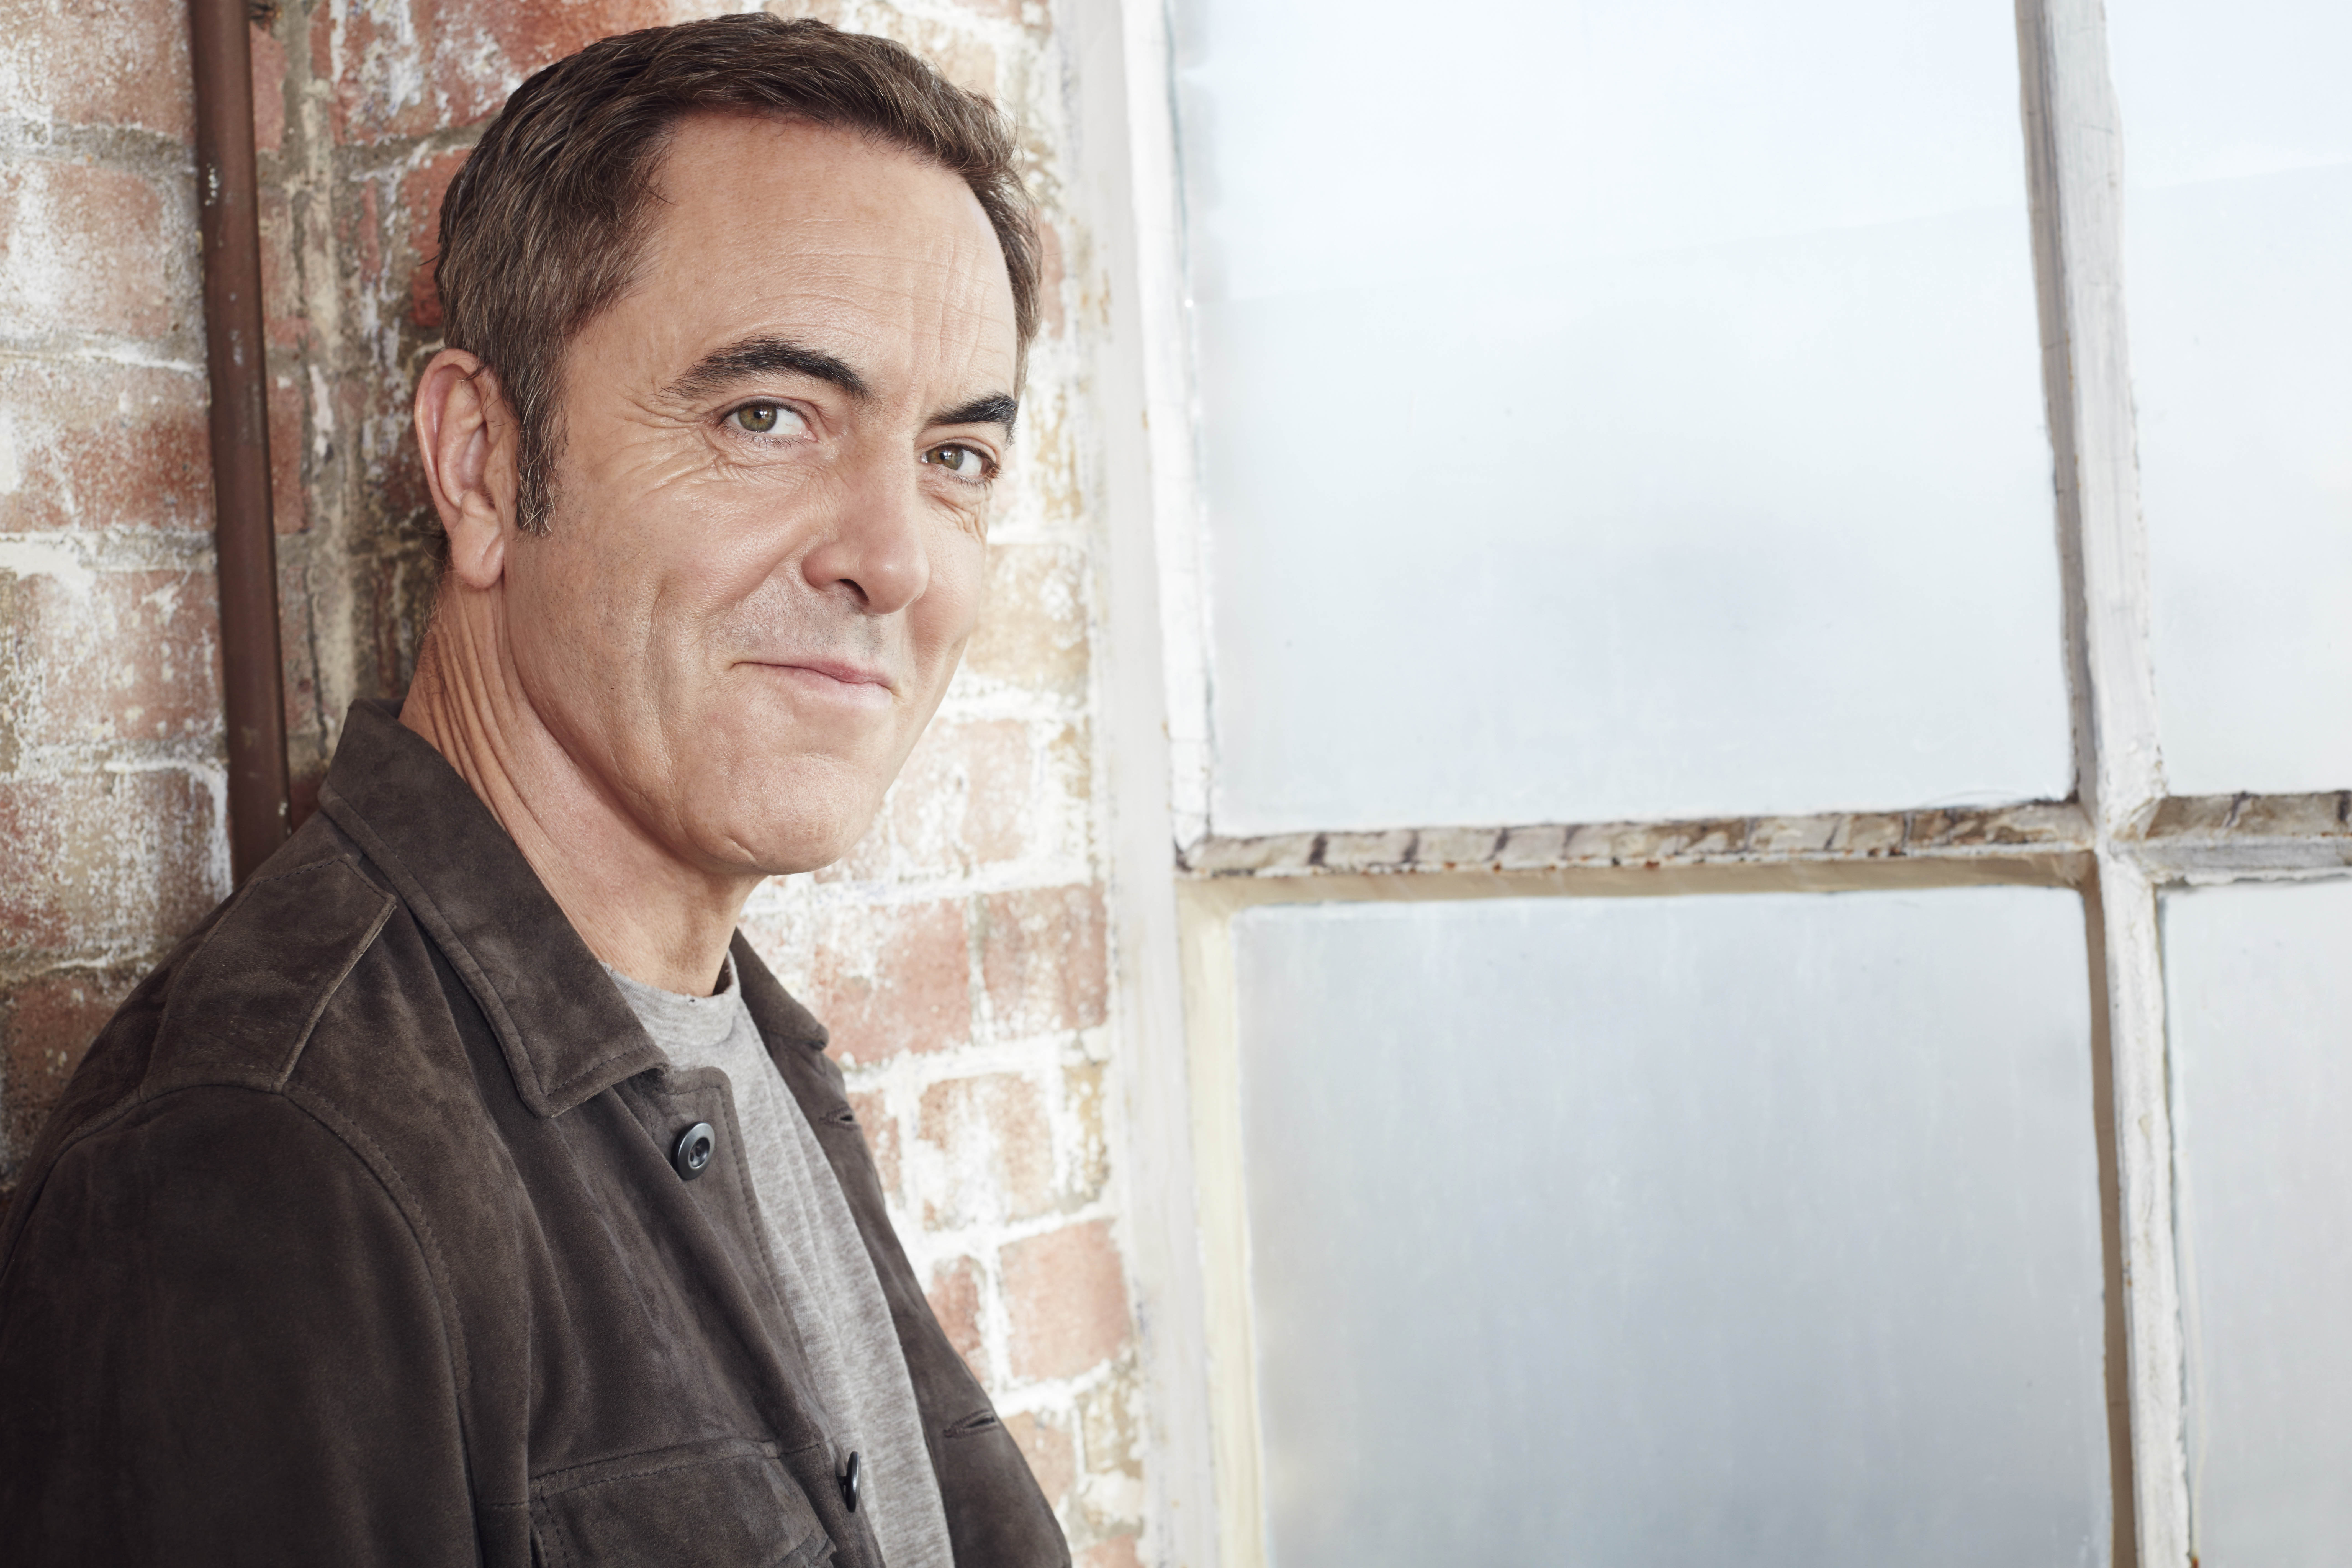 Cold Feet star James Nesbitt's marriage ends in divorce after previous kiss and tell stories